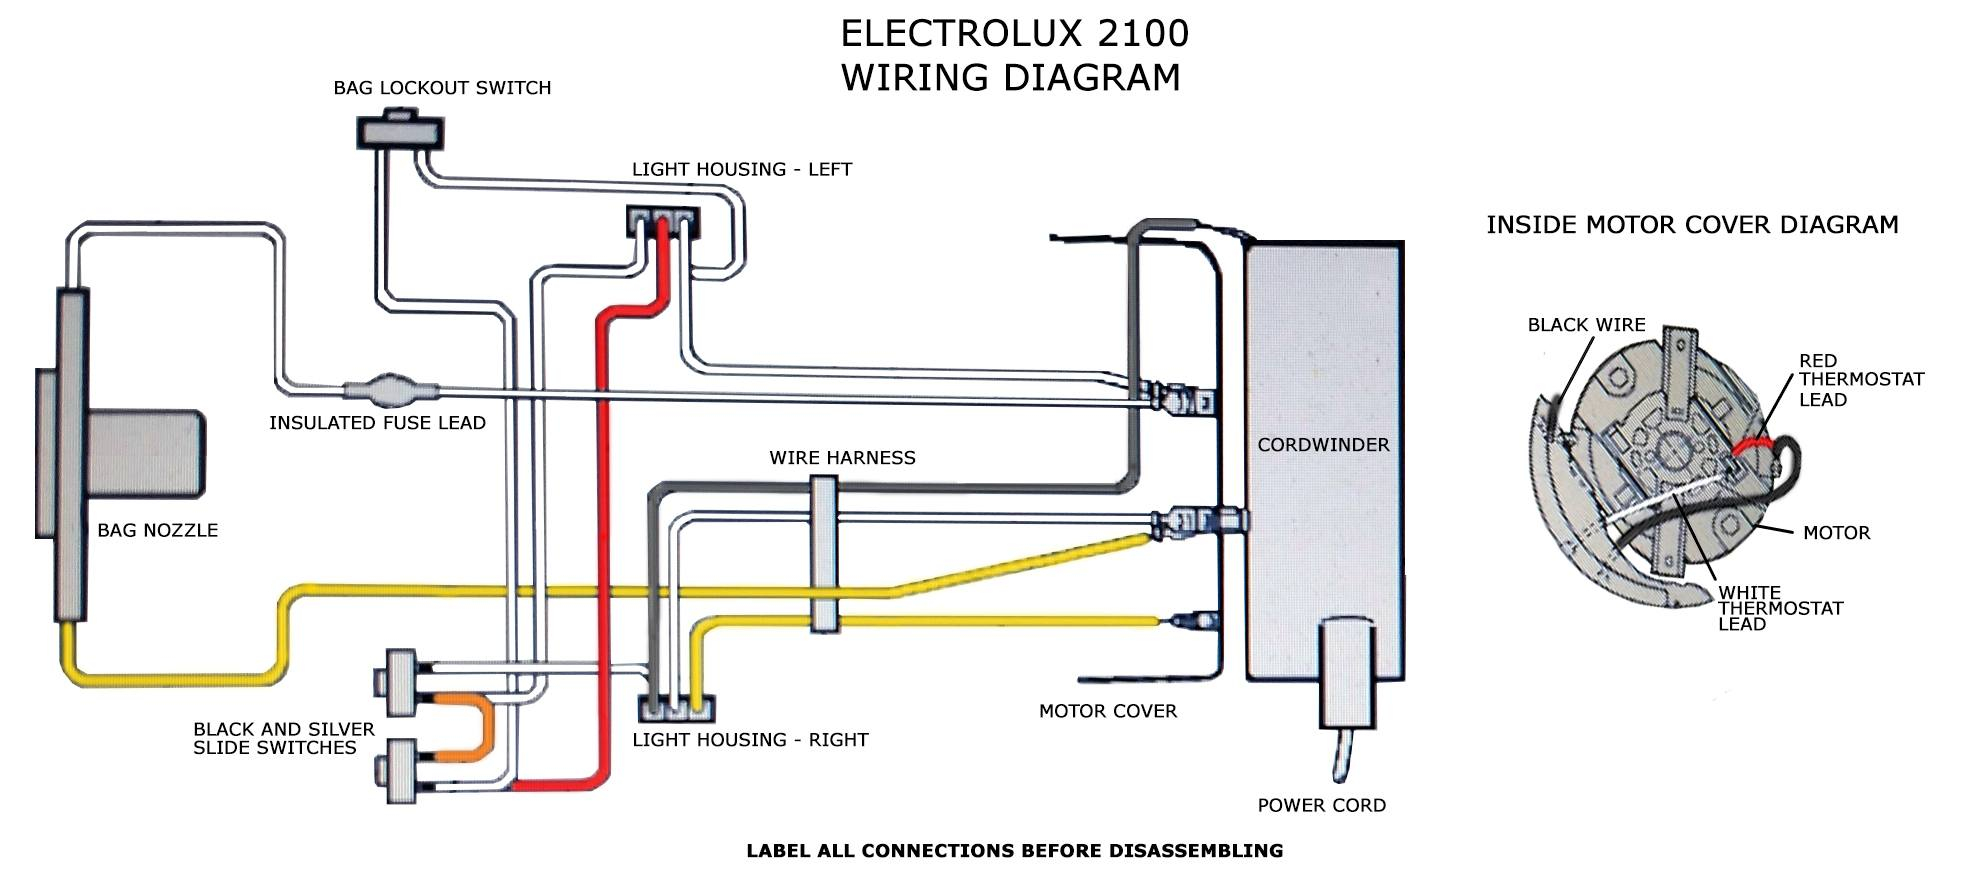 hight resolution of wiring diagram pictures detail name electrolux vacuum wiring diagram 2100